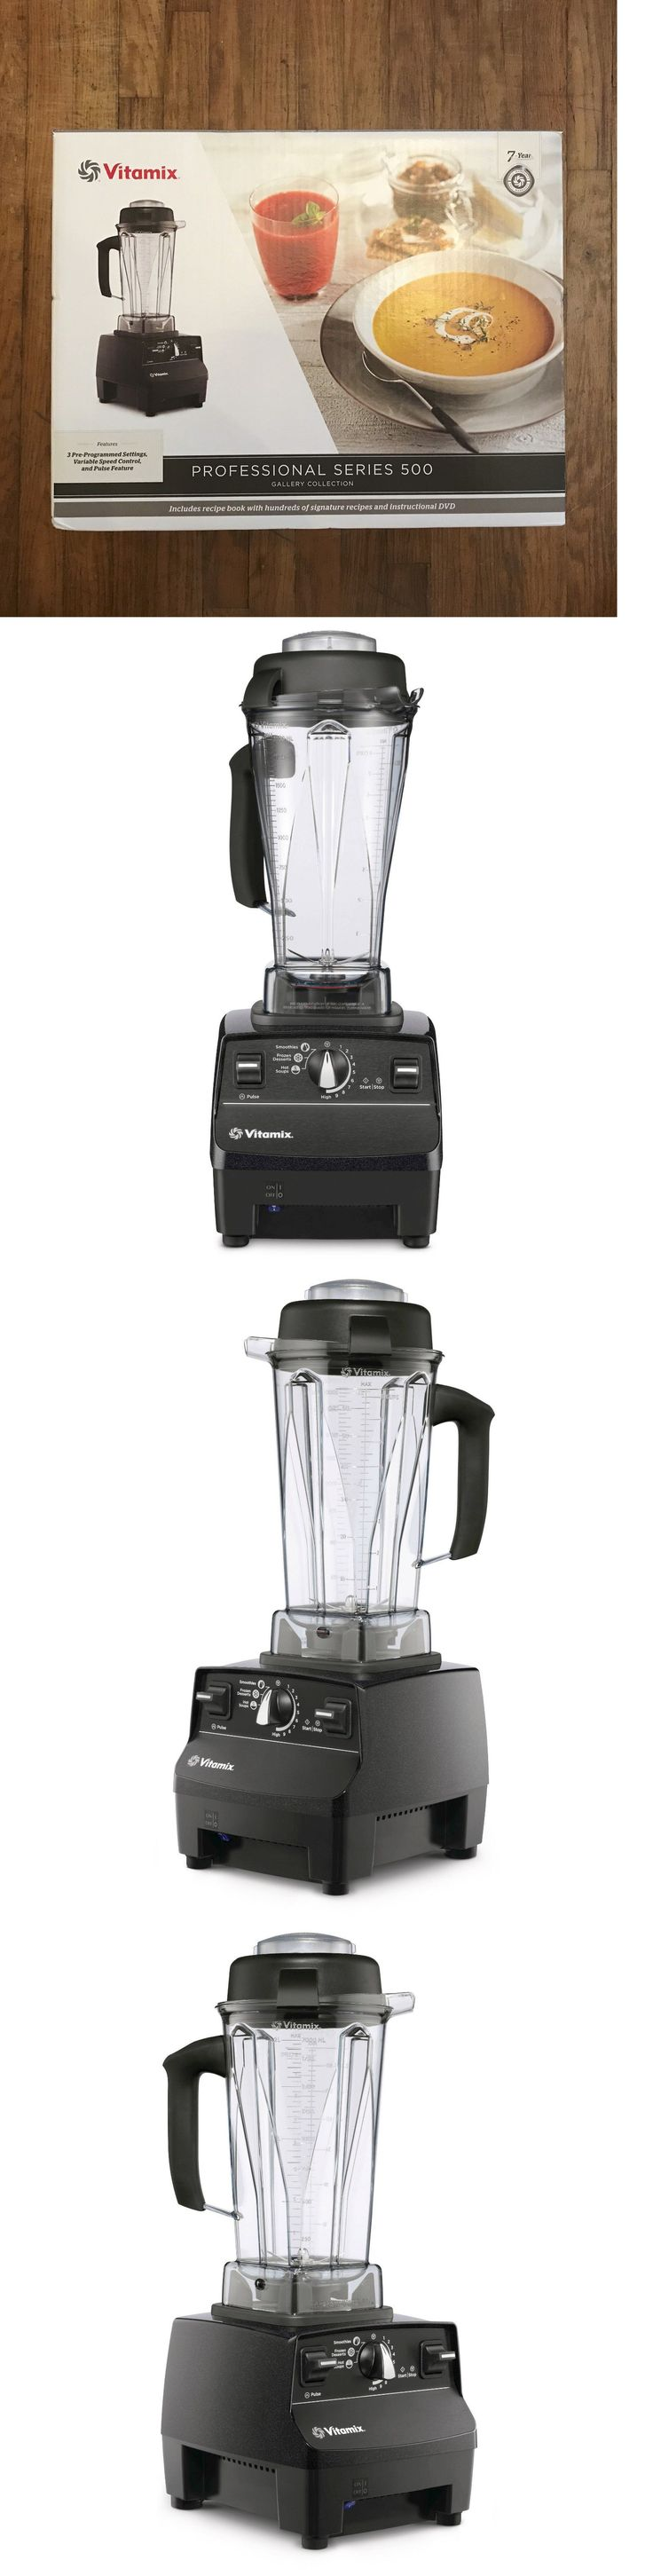 Blenders Countertop 133704: New Vitamix Professional Series 500 Gallery Collection Blender, Black Diamond -> BUY IT NOW ONLY: $419.88 on eBay!